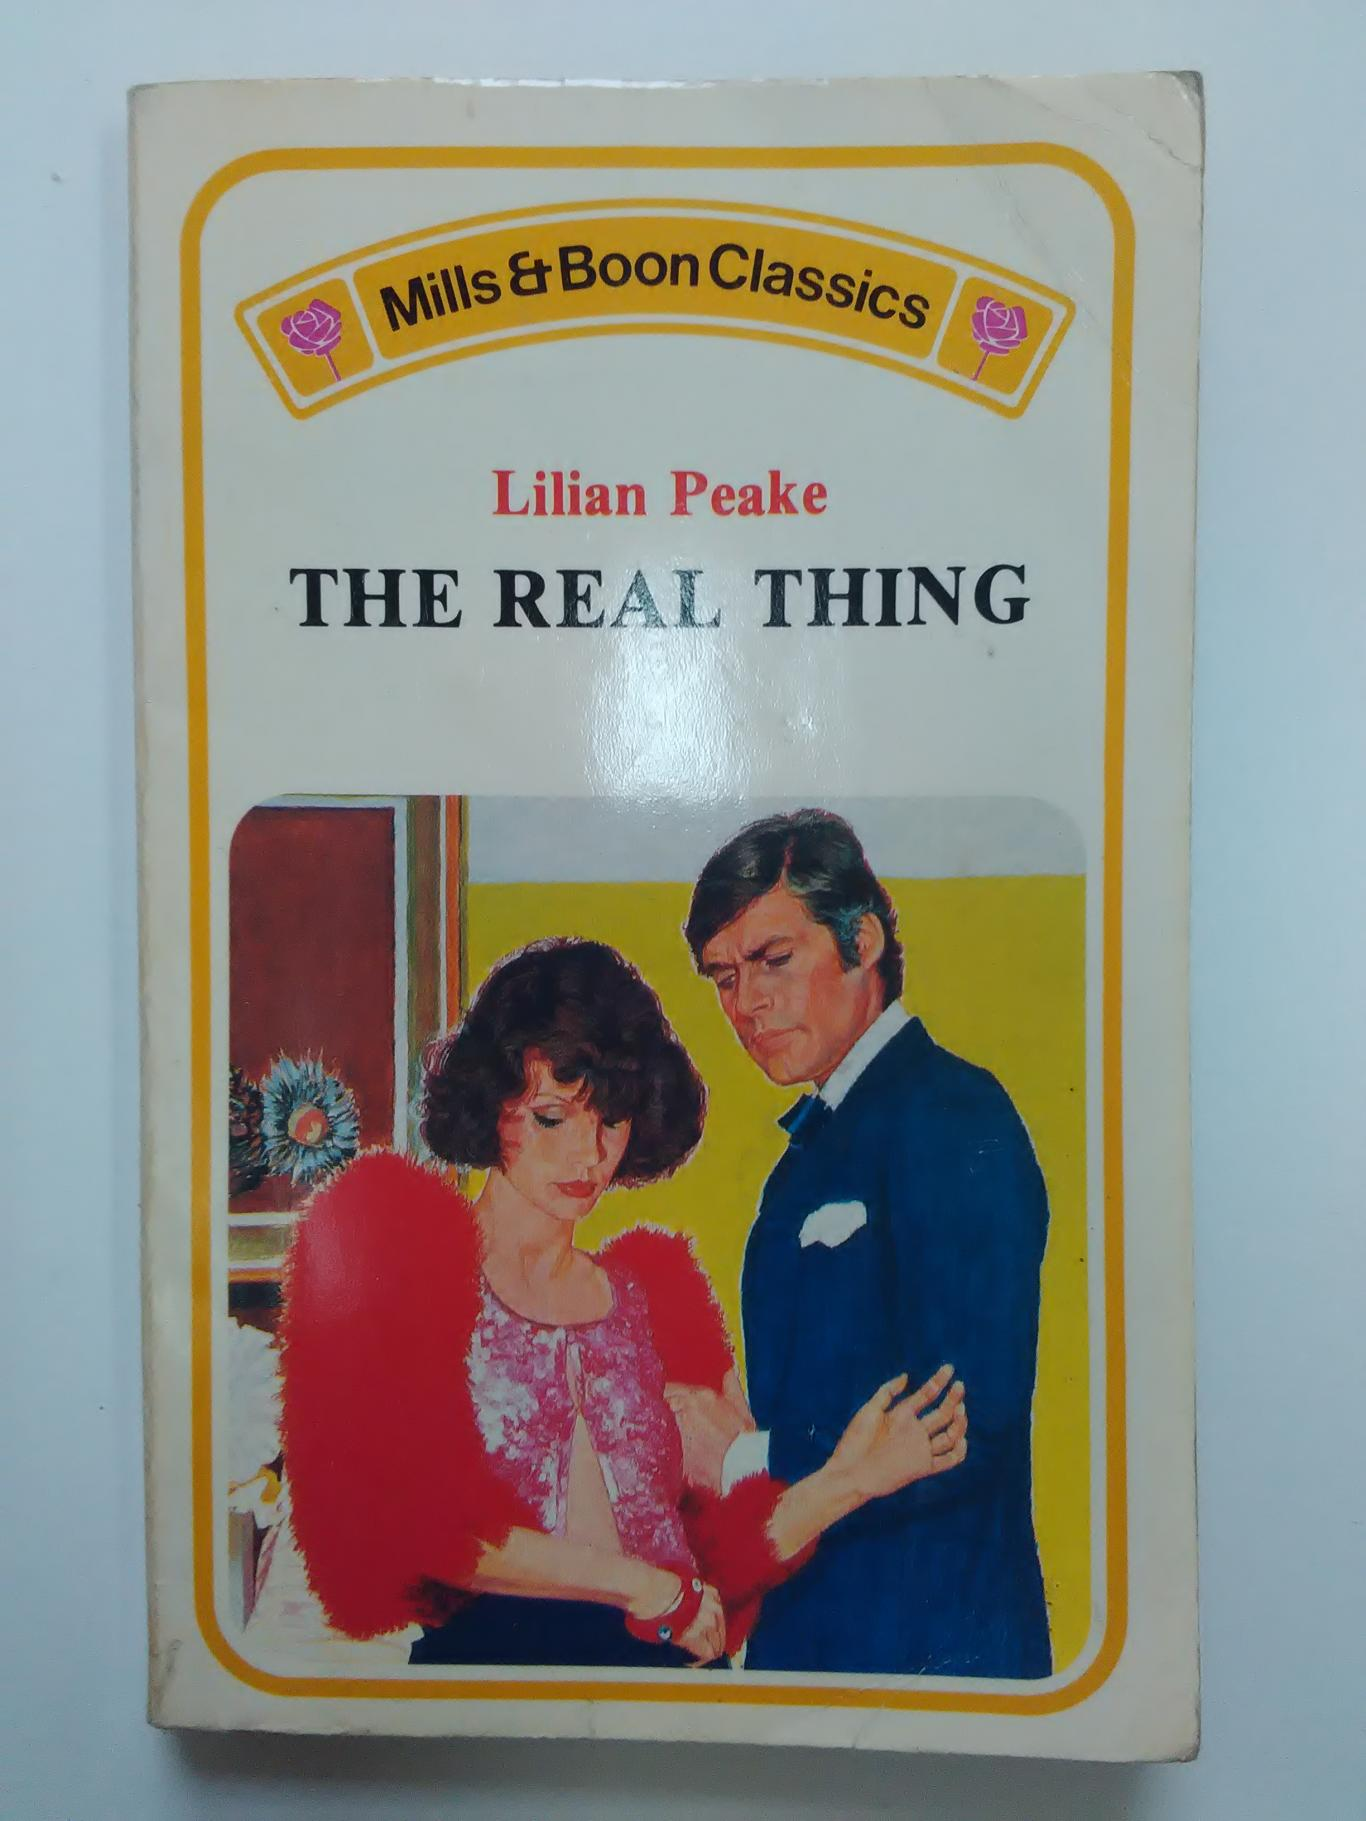 The real thing, Lilian Peake